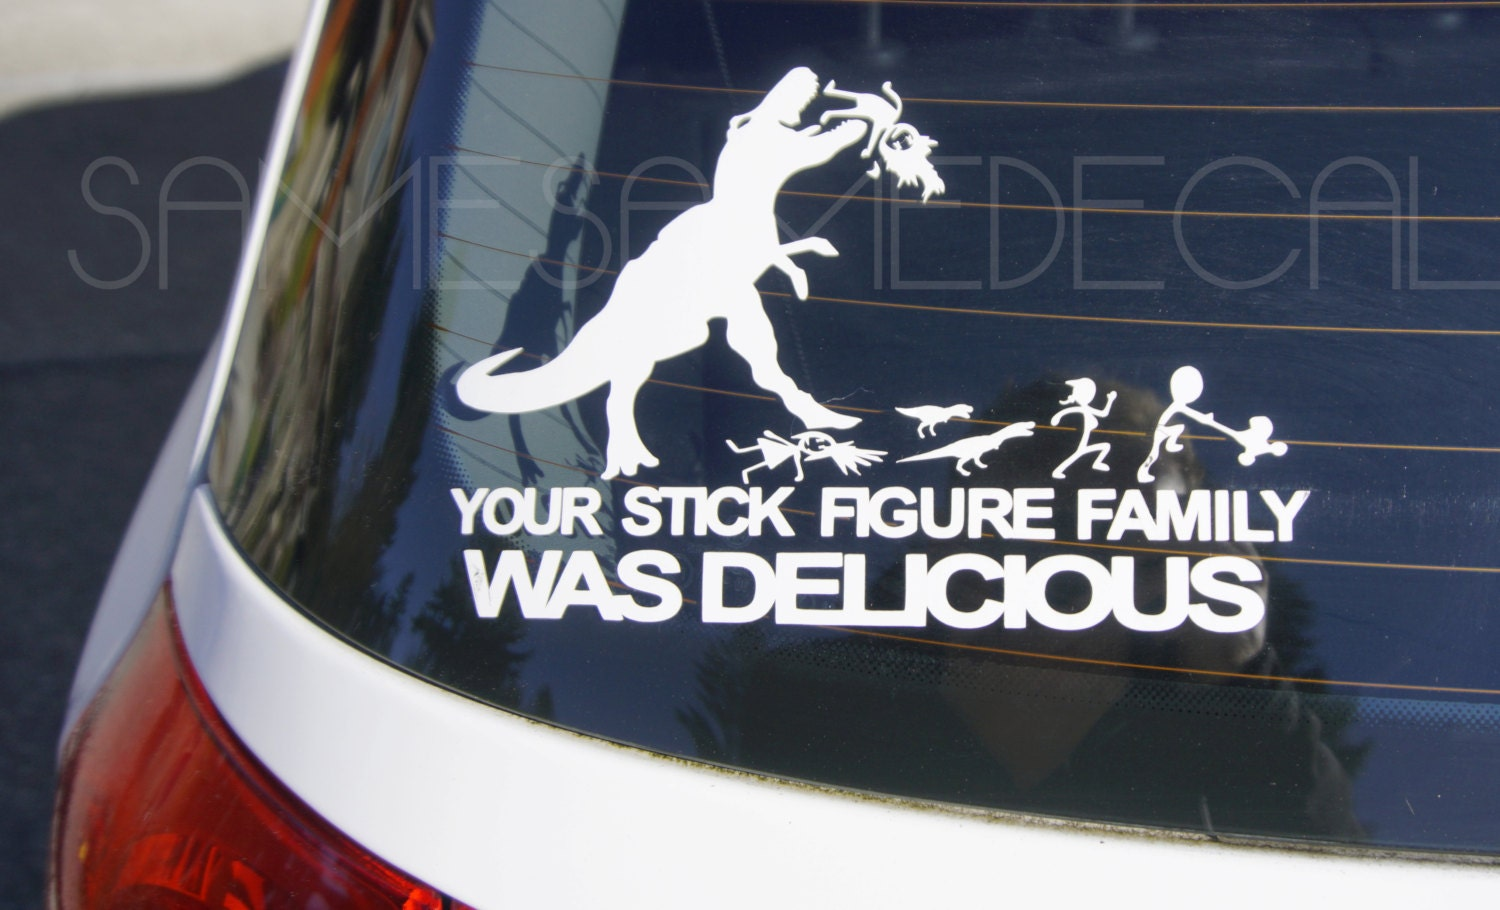 Your Stick Family Was Delicious Sticker Mttaborlegacycom - Vinyl decals for your caramazoncom your stick family was delicious trex vinyl decal